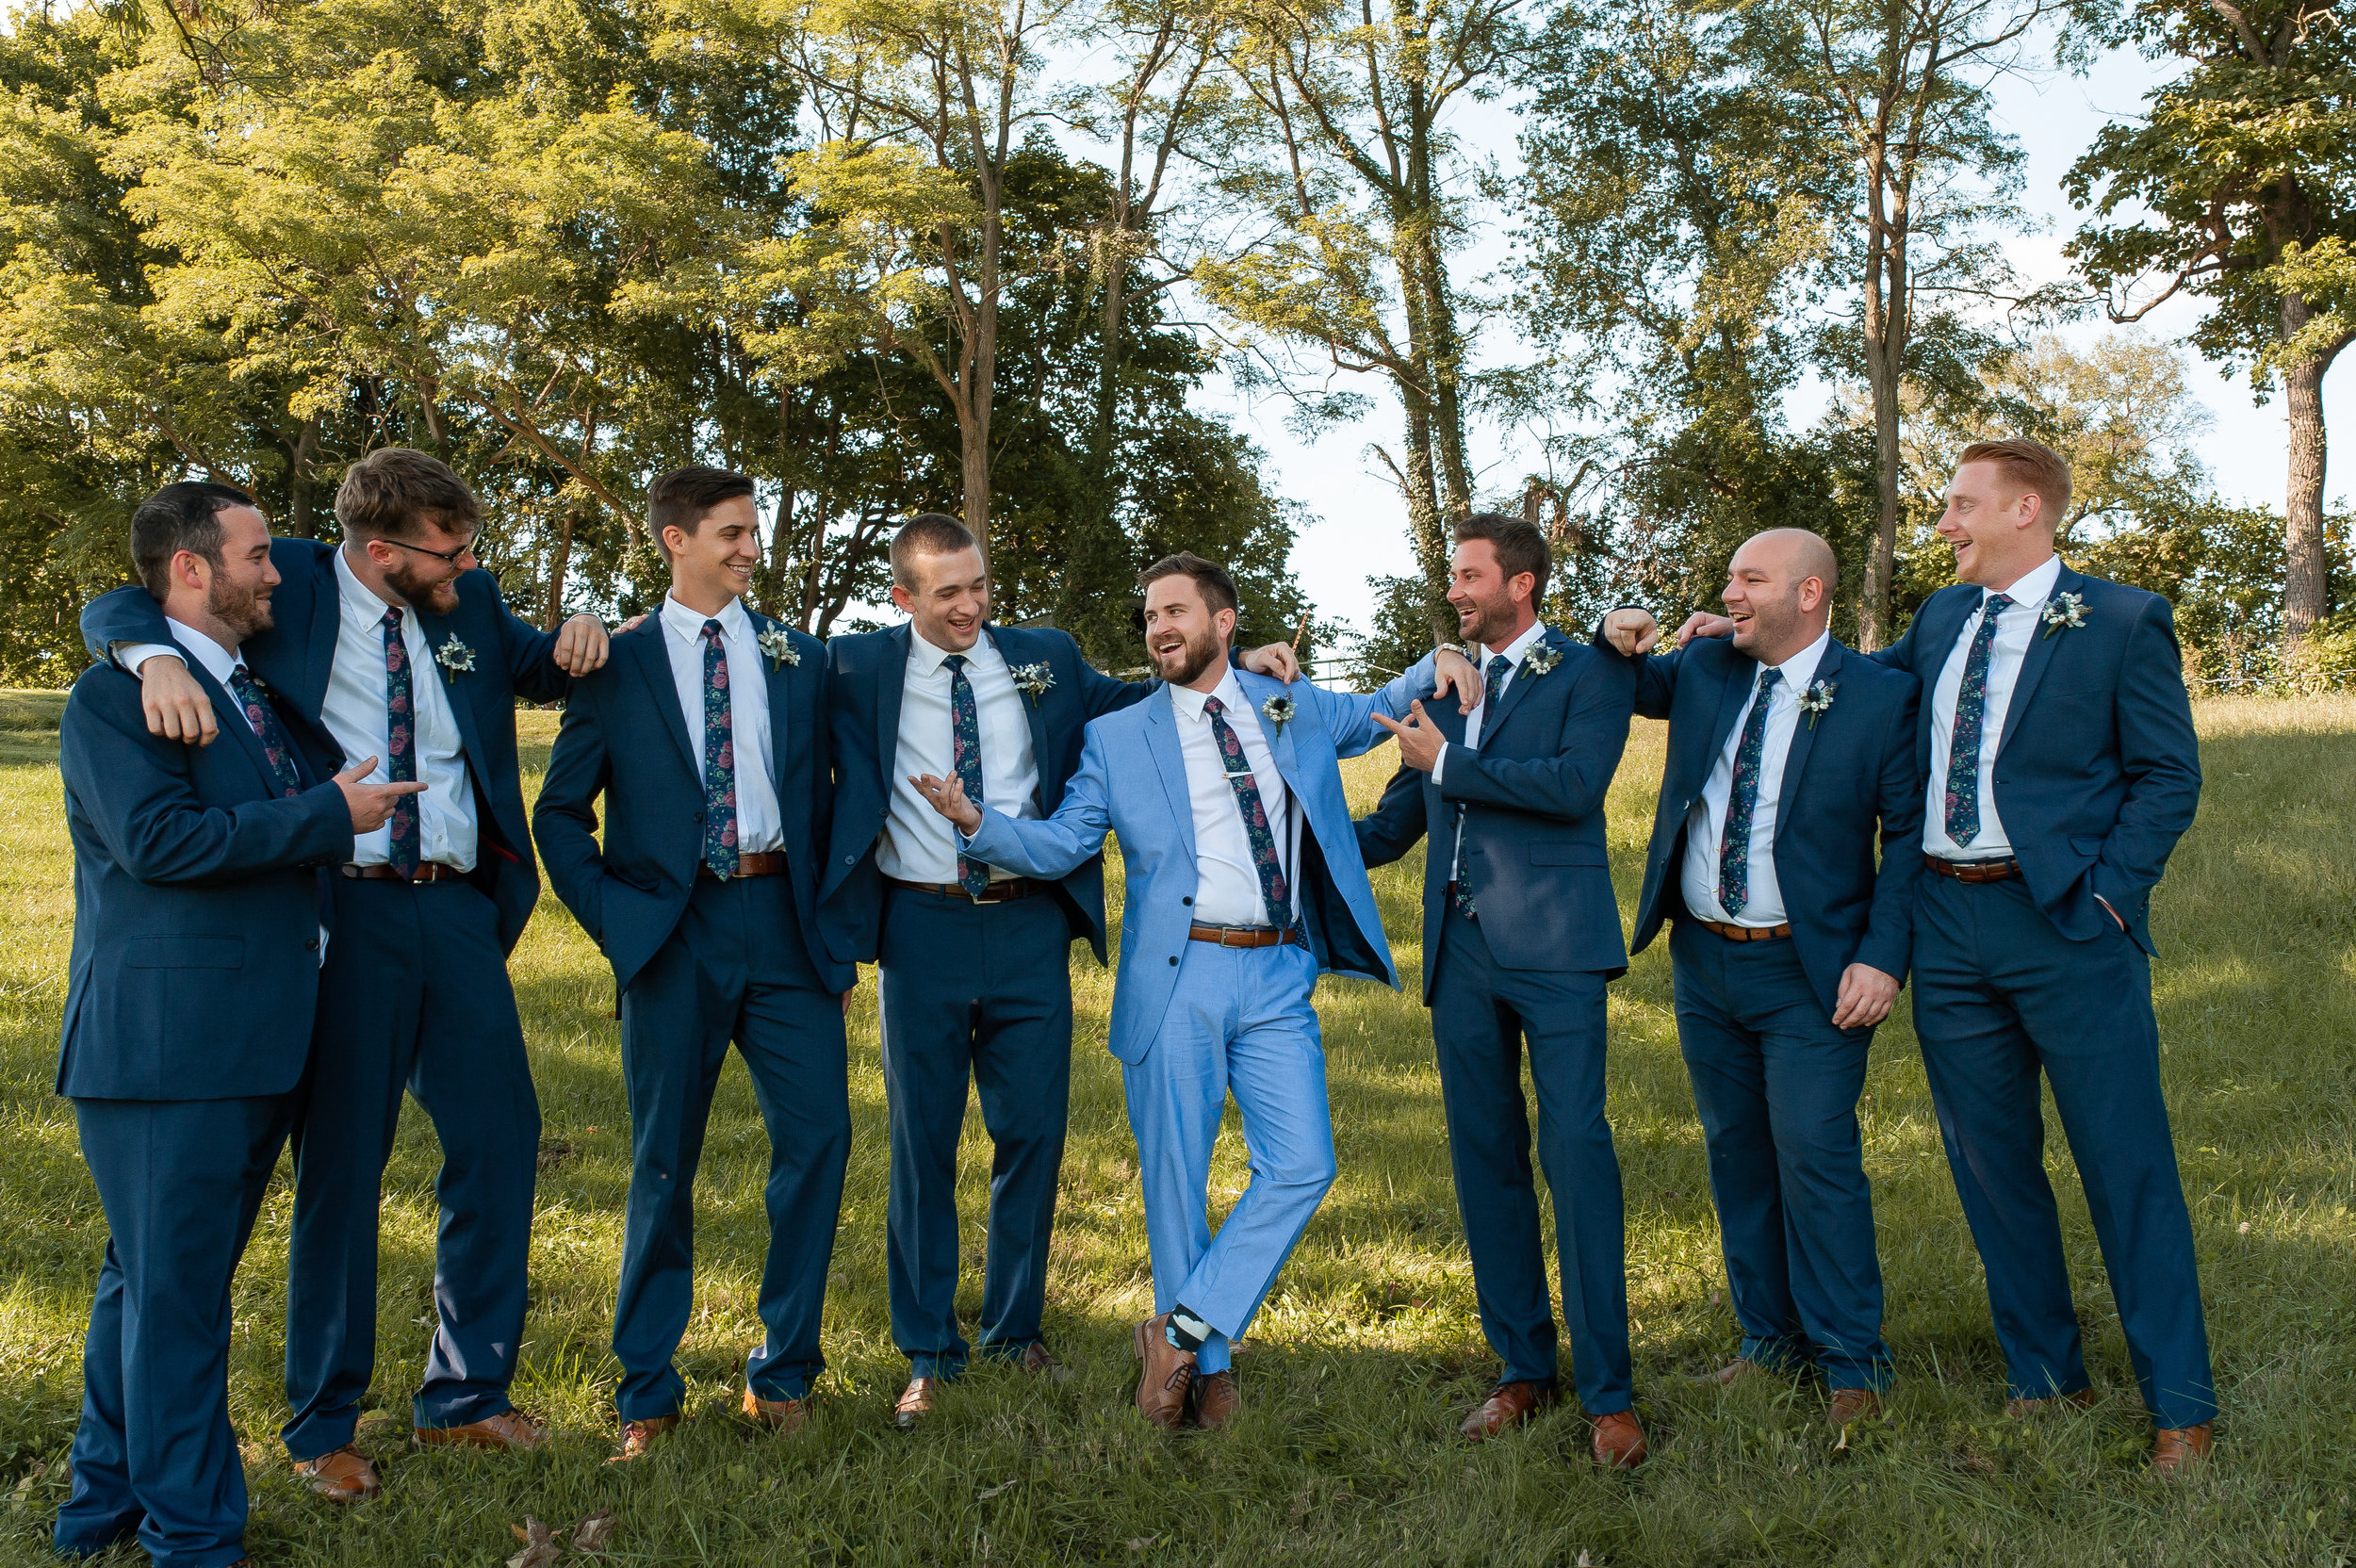 I did find time to photograph the guys before the ceremony as well!